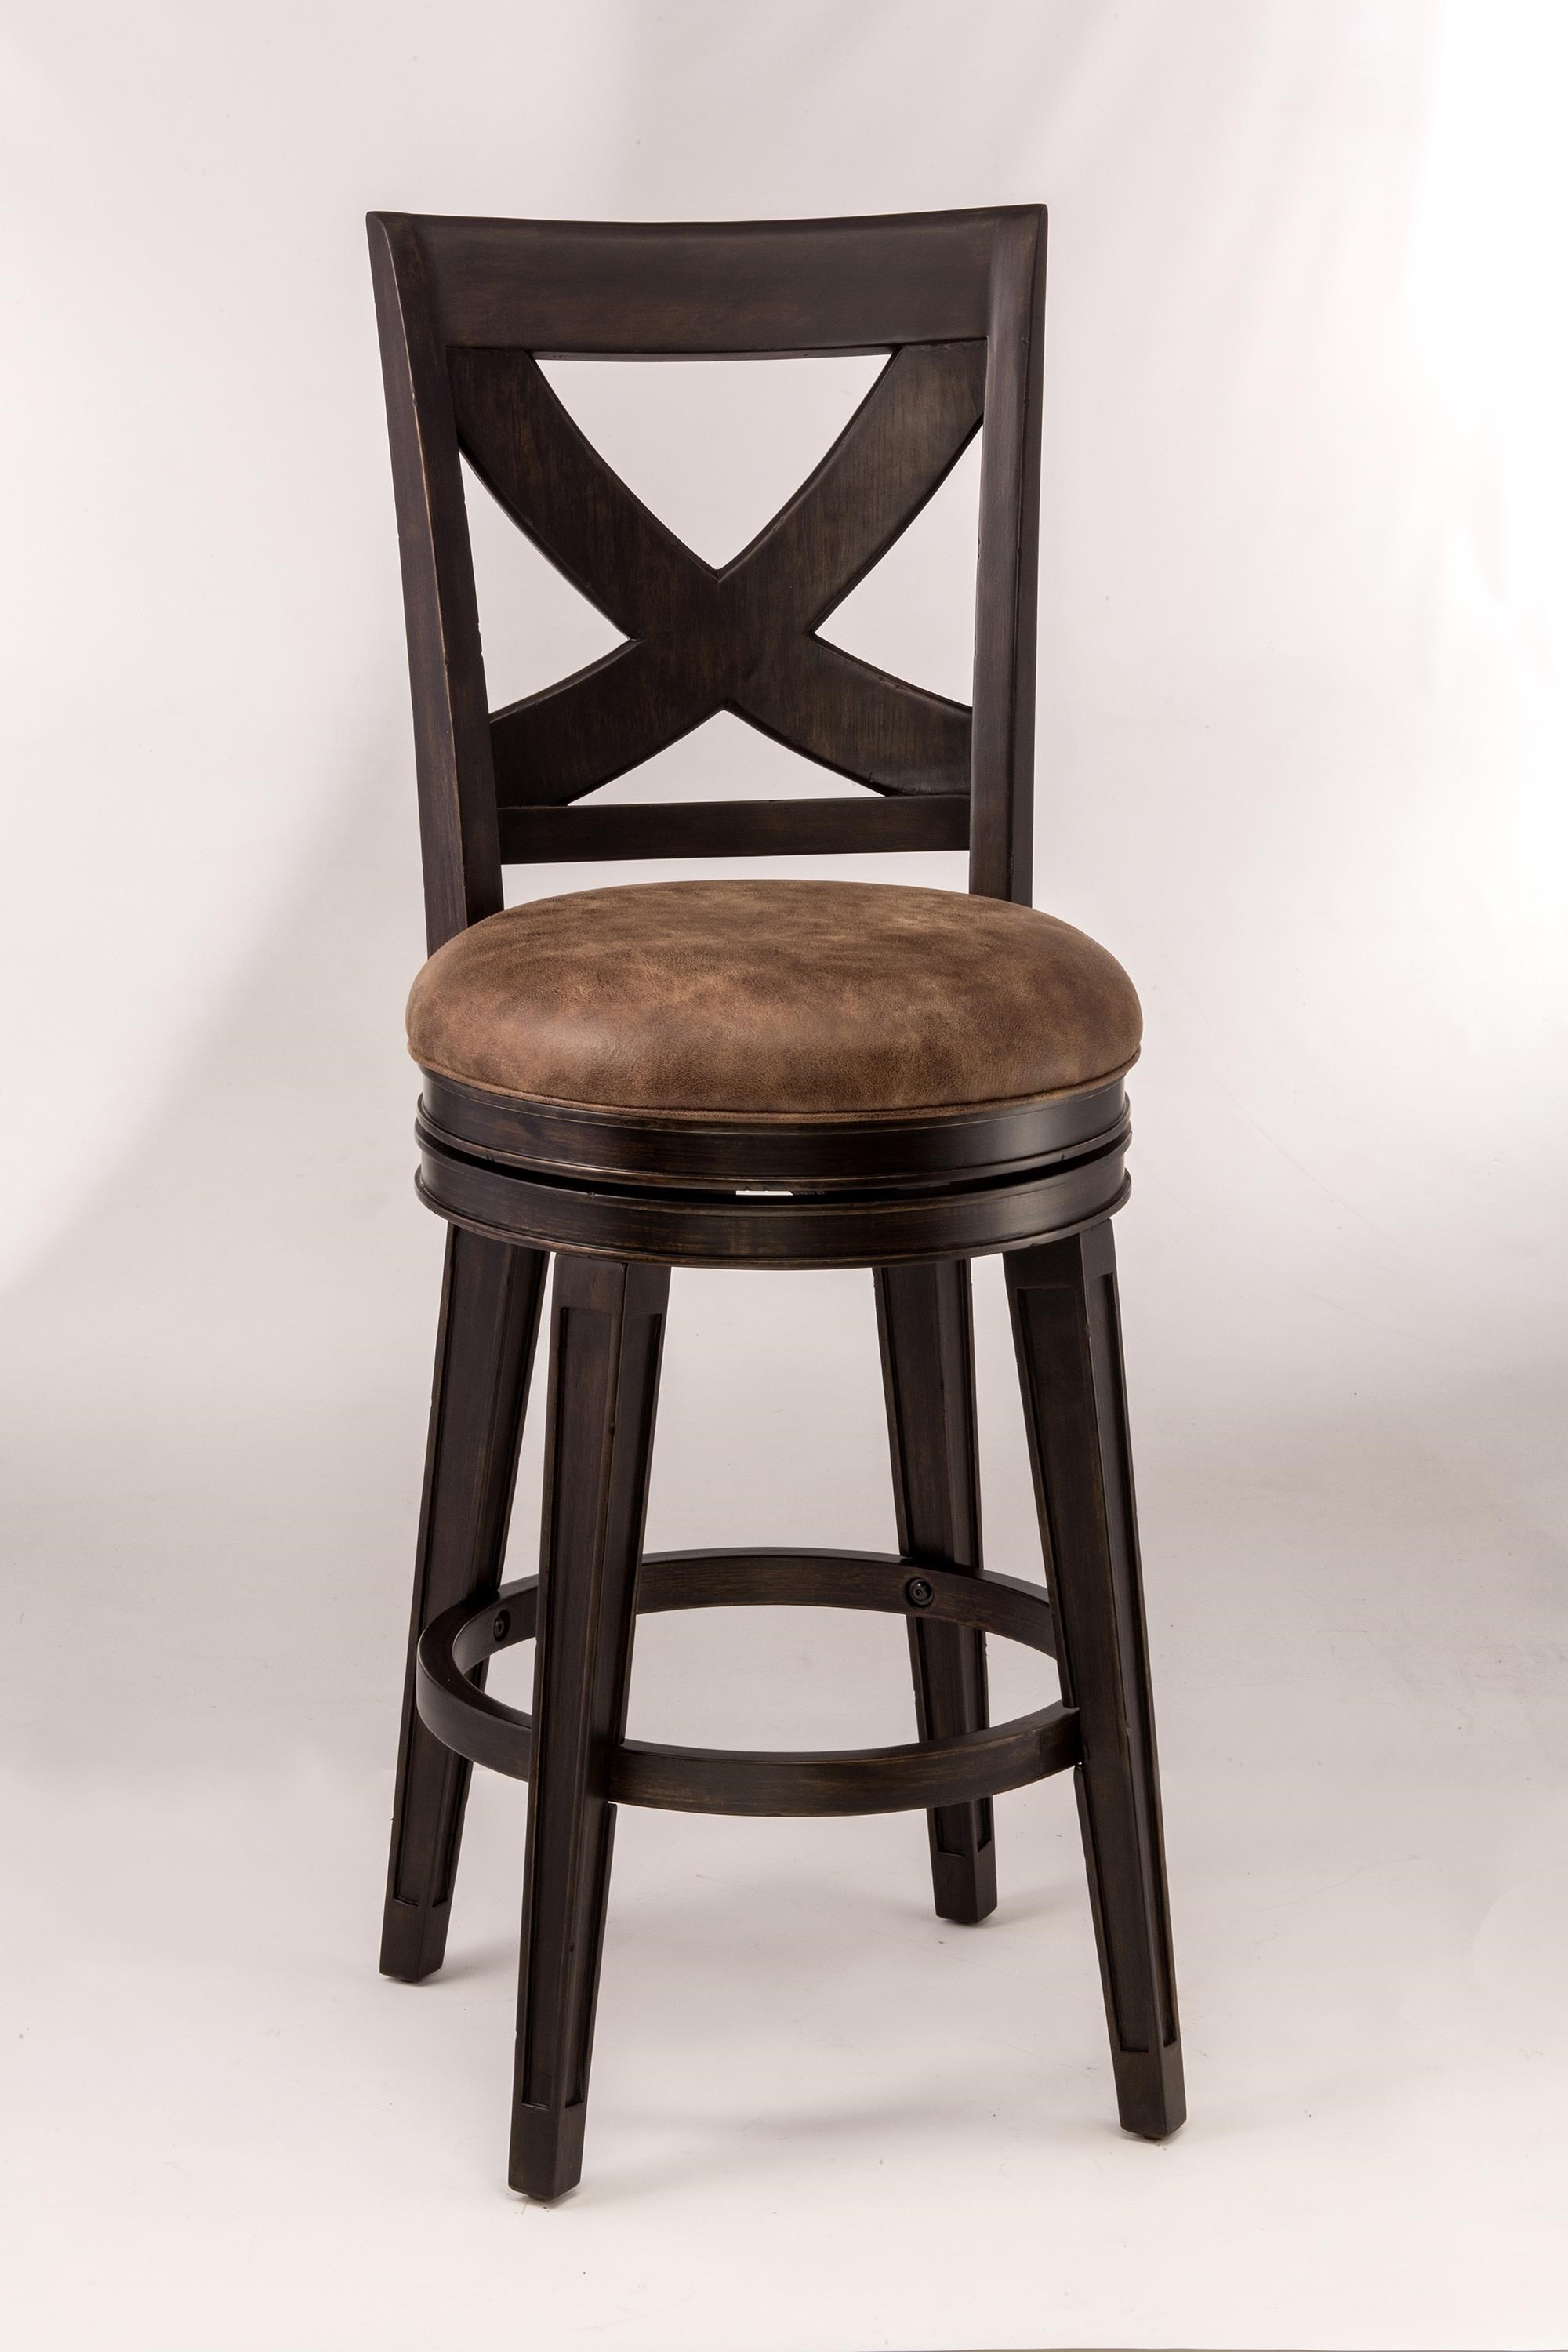 Hillsdale Metal Stools Rustic Swivel Counter Stool with X-Backrest - Godby Home Furnishings ...